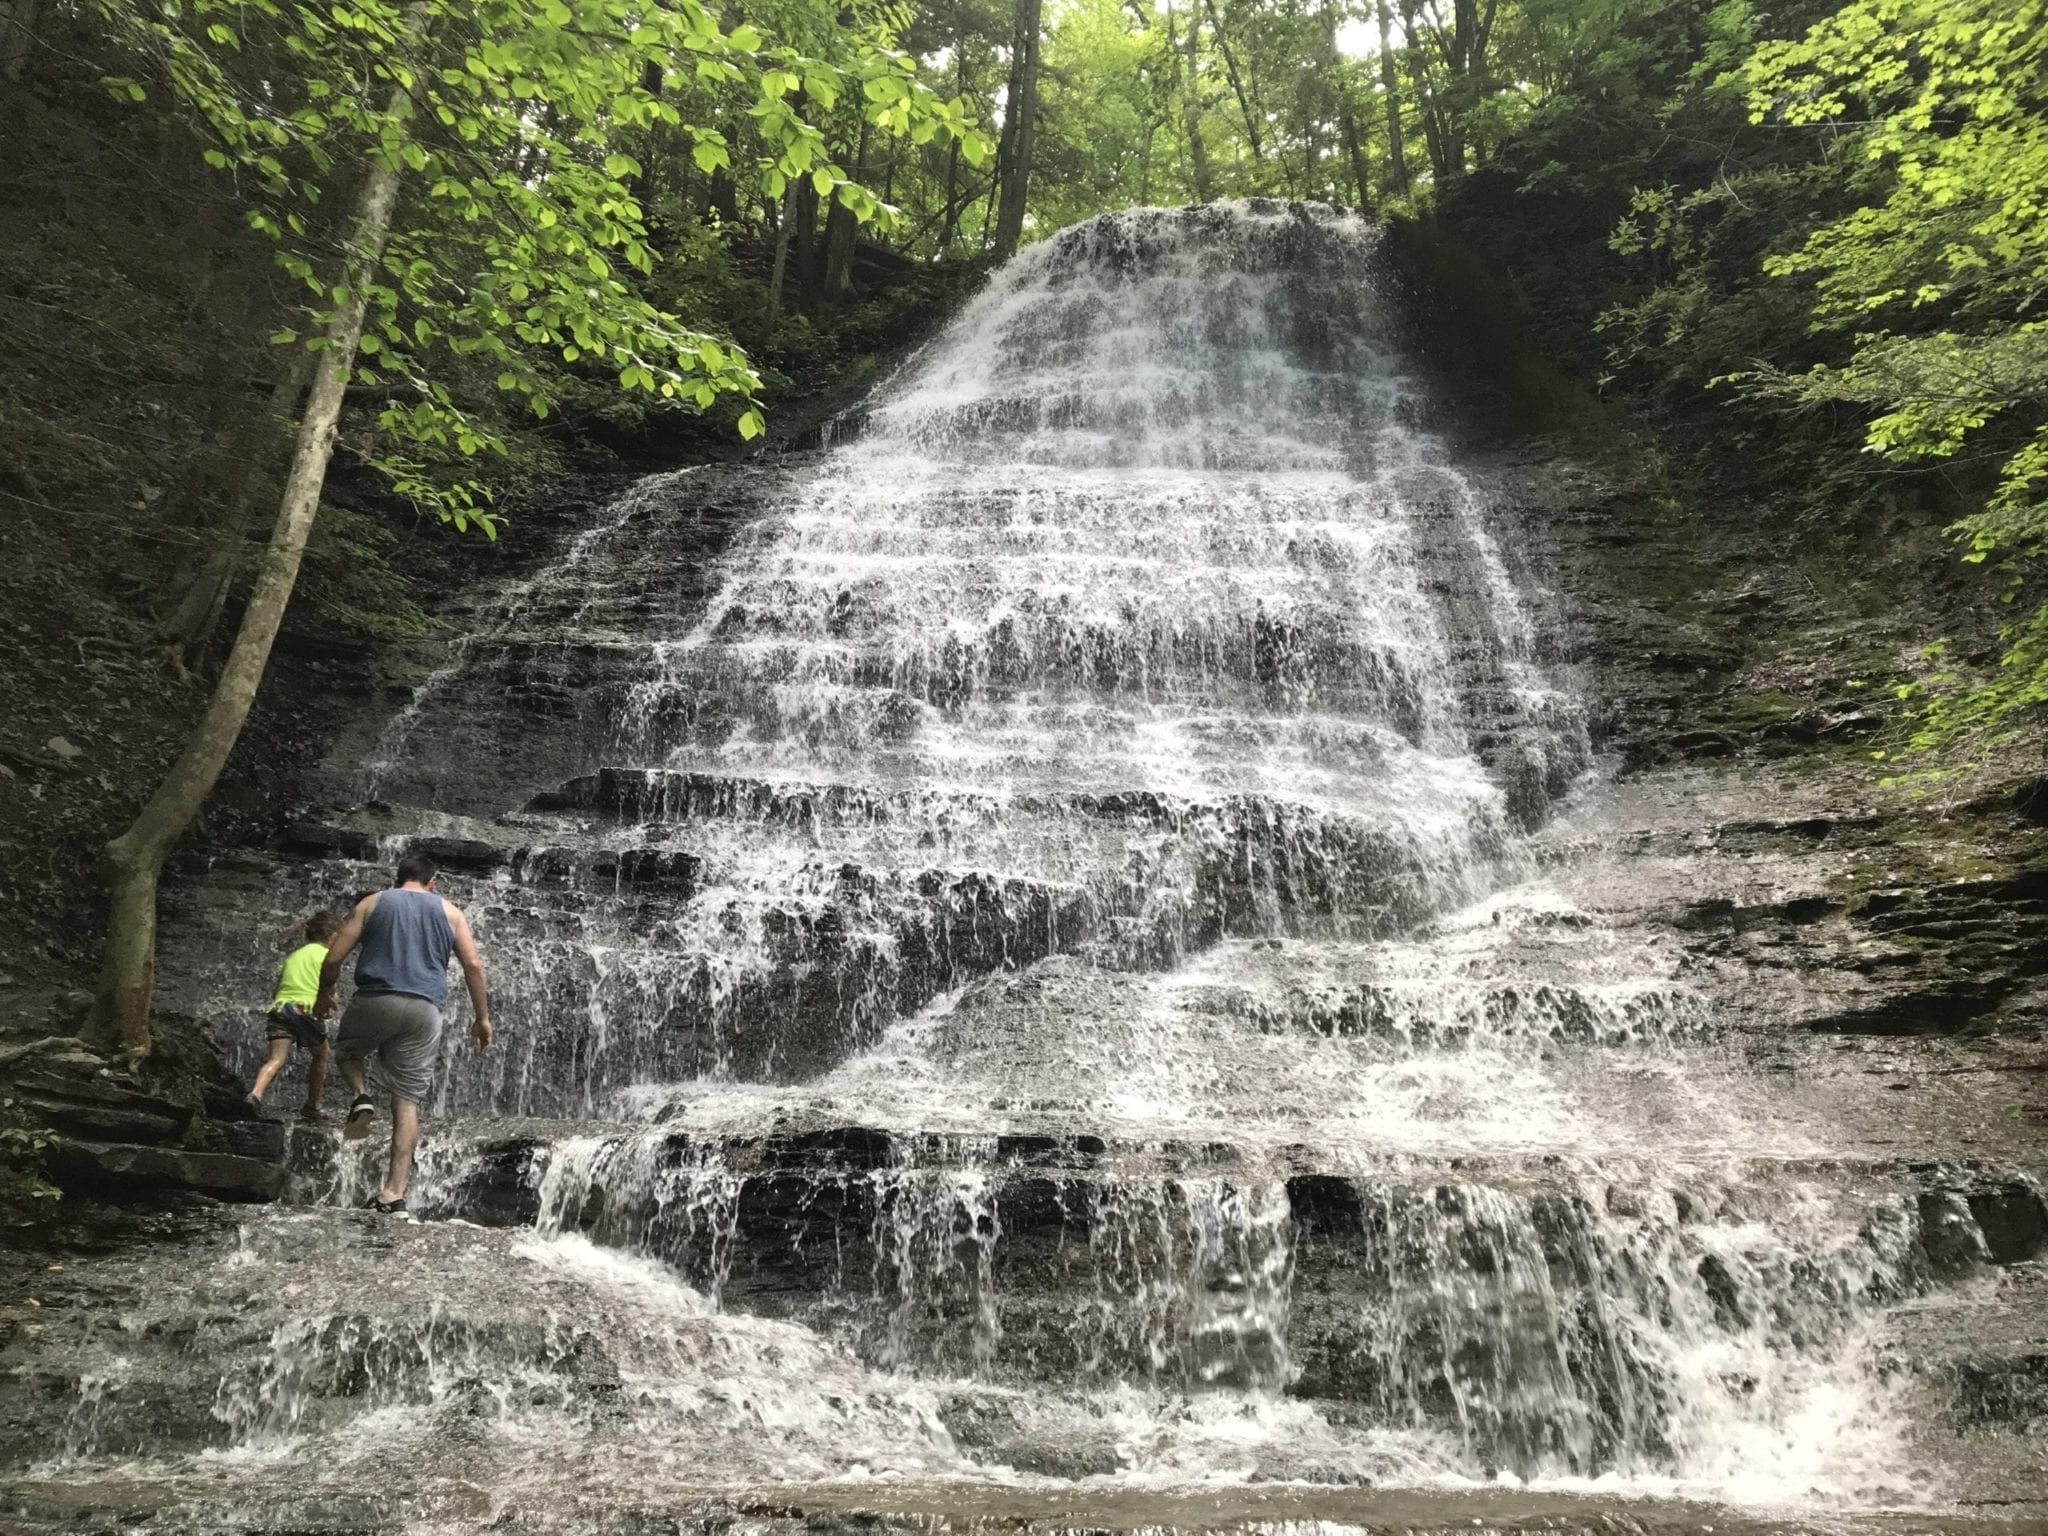 Spring Brook Falls – Ithaca, Town of, Tompkins